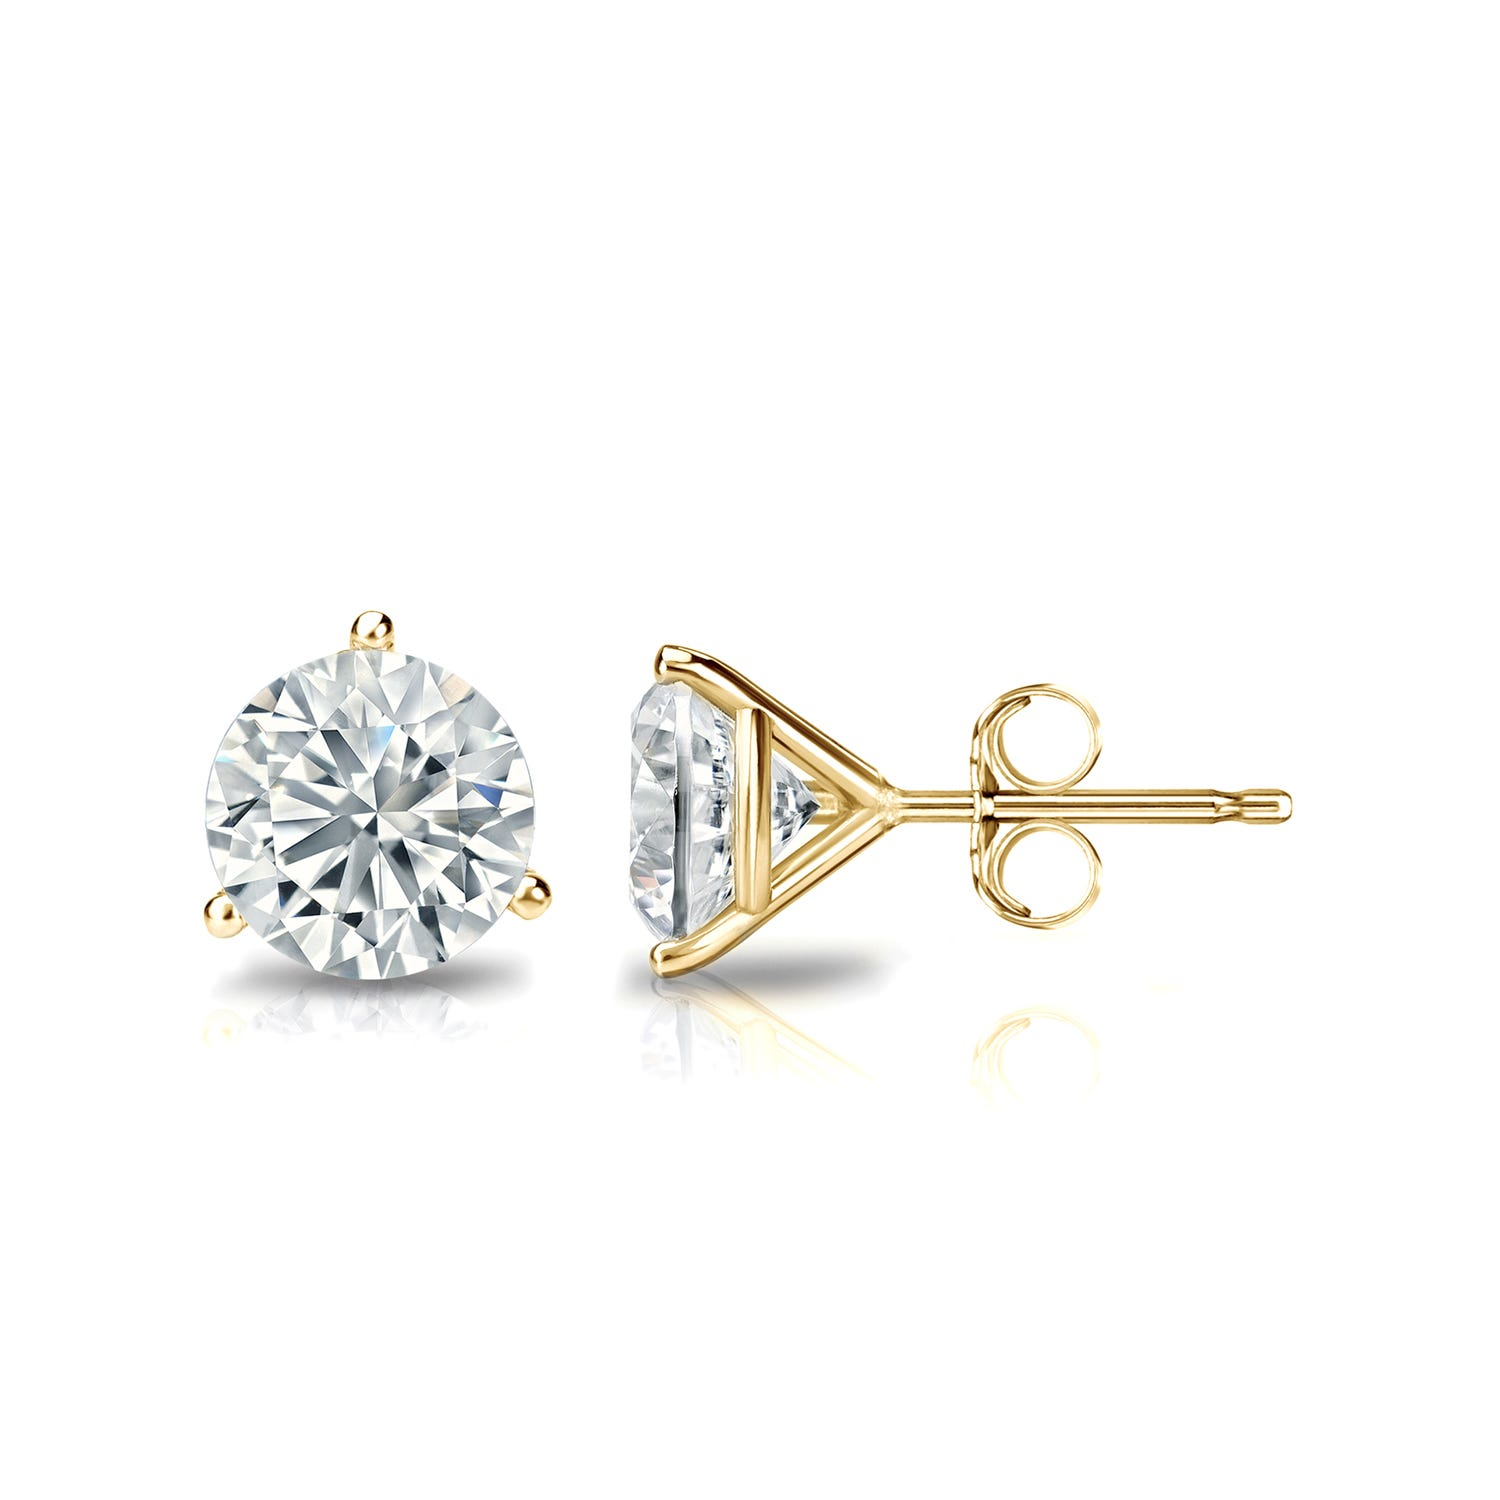 1 CTTW Round Diamond Solitaire Stud Earrings IJ I2 in 18K Yellow Gold IGI Certified 3-Prong Setting